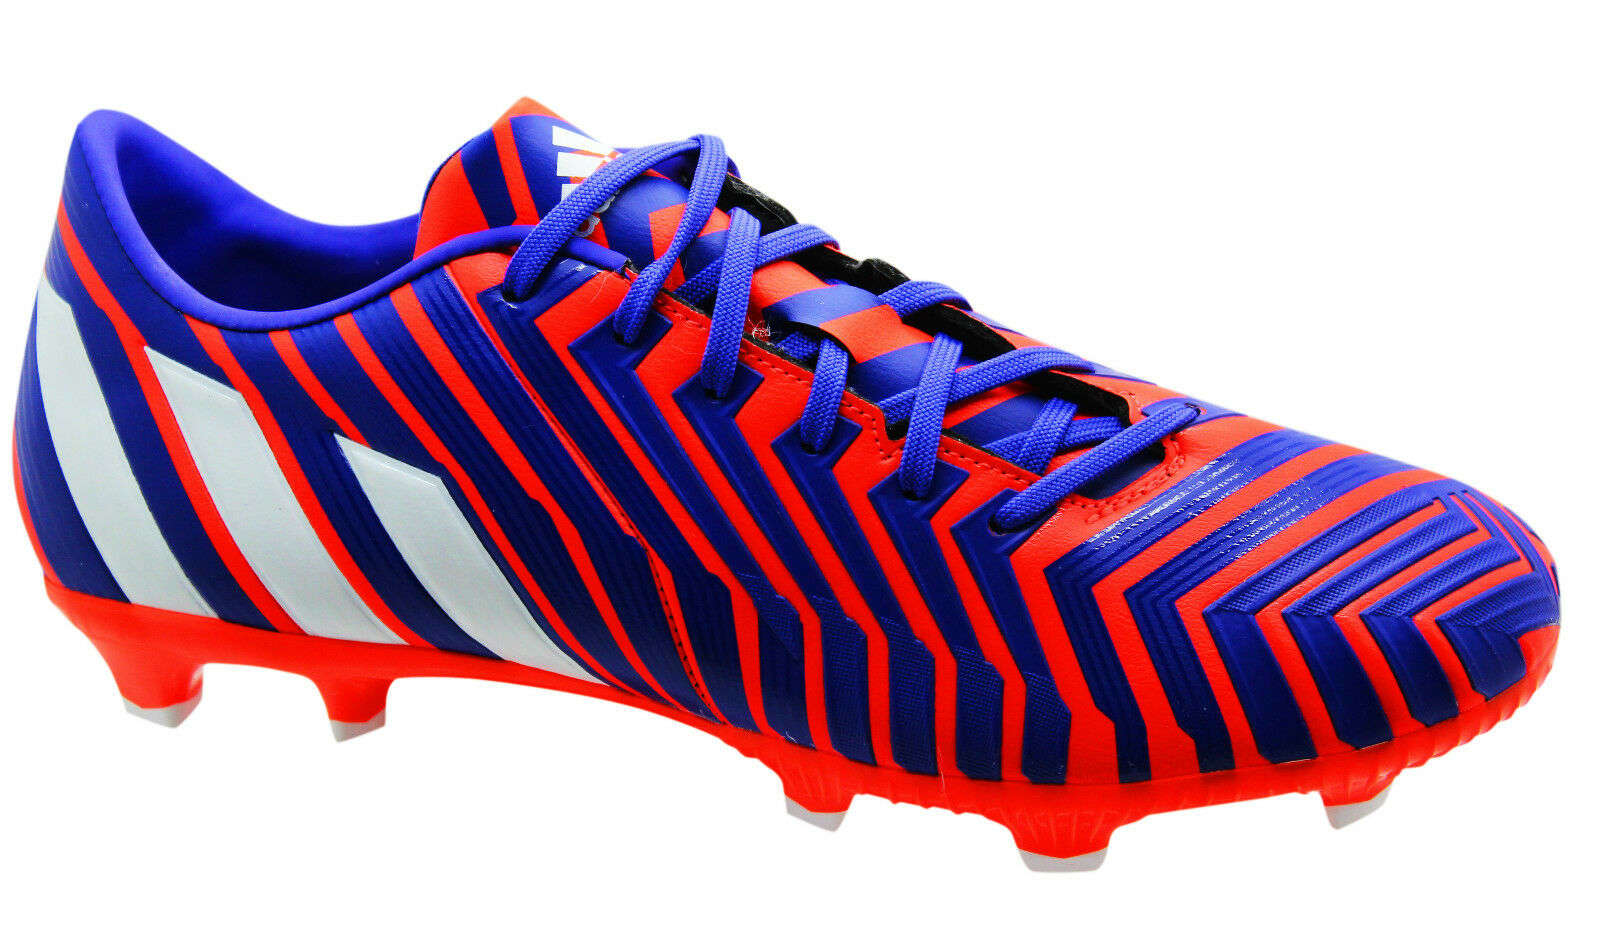 adidas Predator Absolado Instinct FG B35472 Football Soccer BOOTS Cleats  Size 7. About this product. Picture 1 of 1